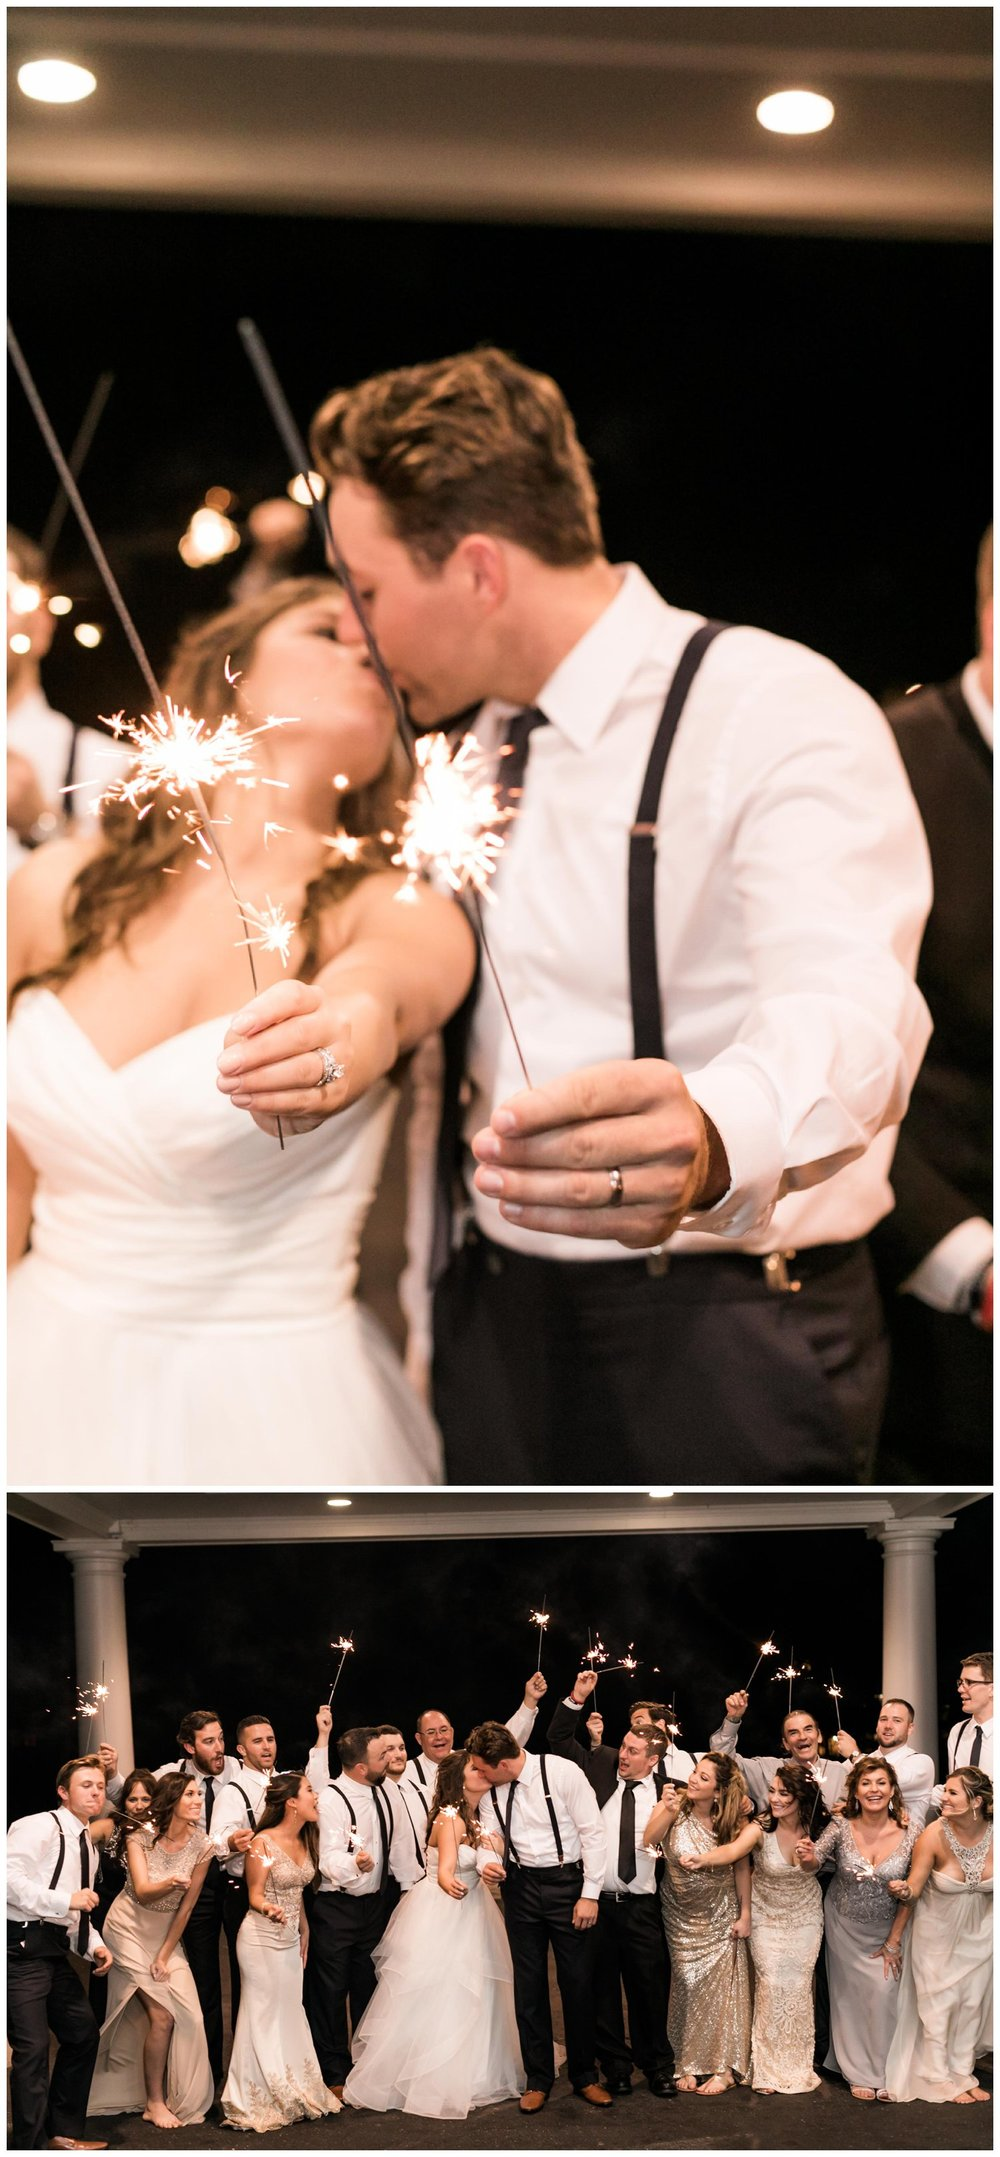 JenandEd_NewJerseyWedding_CarriageHouse_Galloway_NJ__SouthJersey_Wedding_Photographer_MagdalenaStudios_0282.jpg